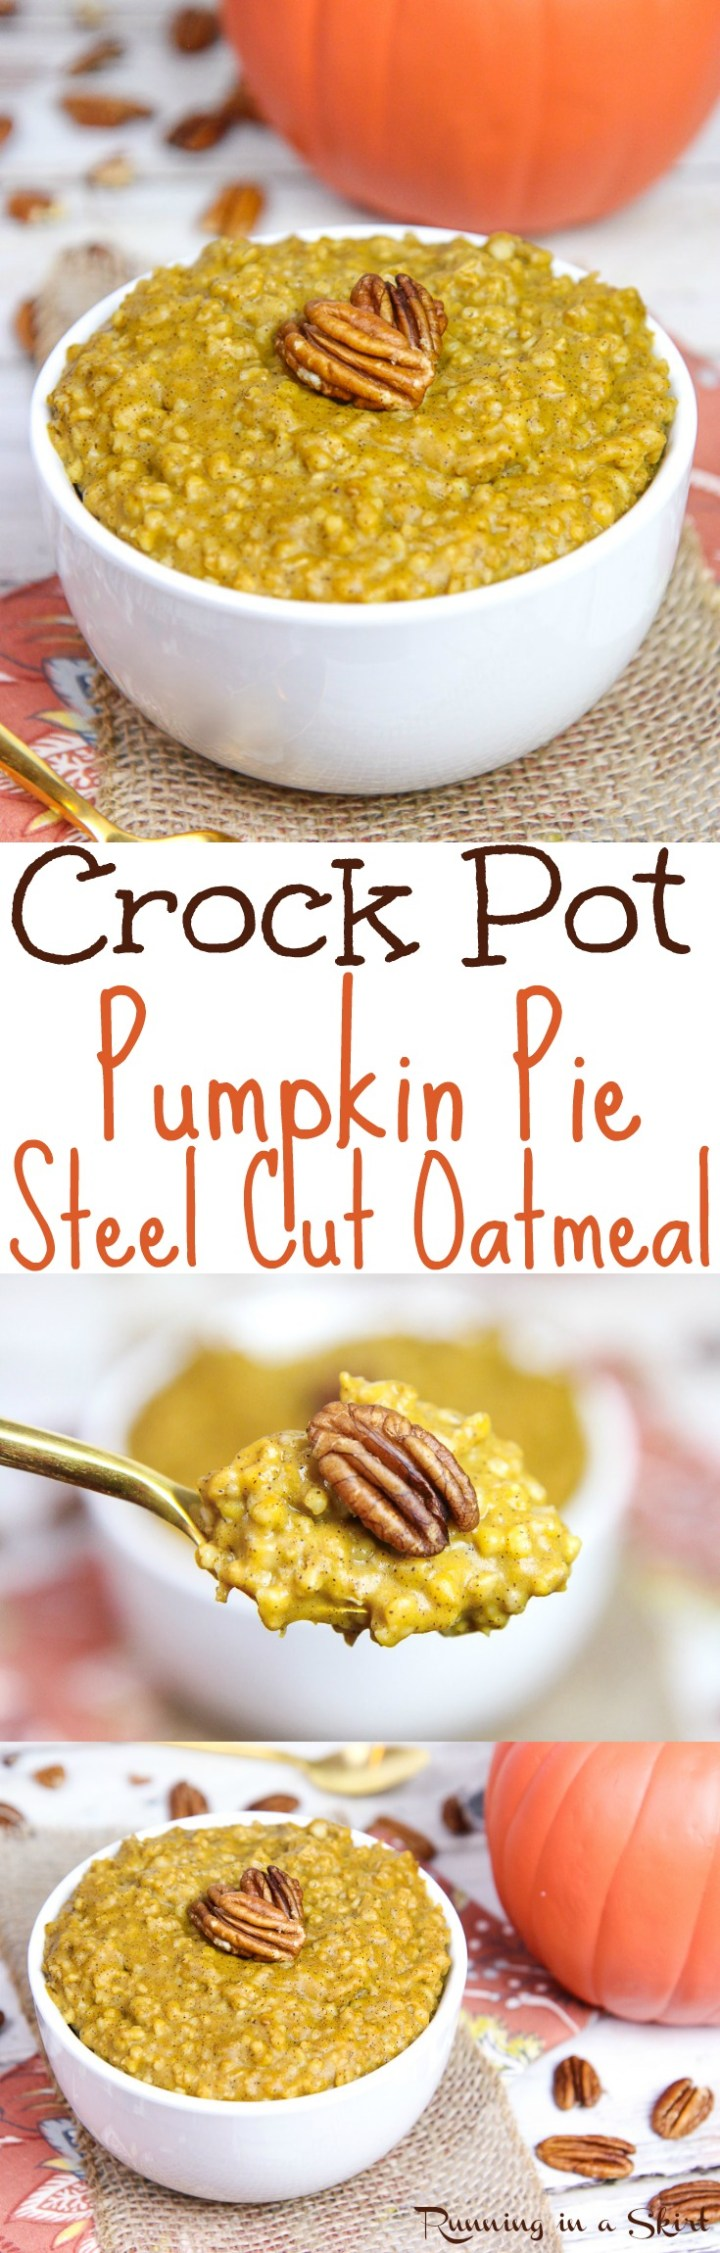 6 Ingredient Crock Pot Pumpkin Pie Steel Cut Oats - the perfect fall oatmeal recipes!  This healthy Pumpkin Steel Cut Oats is a clean eating, vegan and can be cooked overnight.  Uses almond milk, spices and maple syrup. / Running in a Skirt via @juliewunder